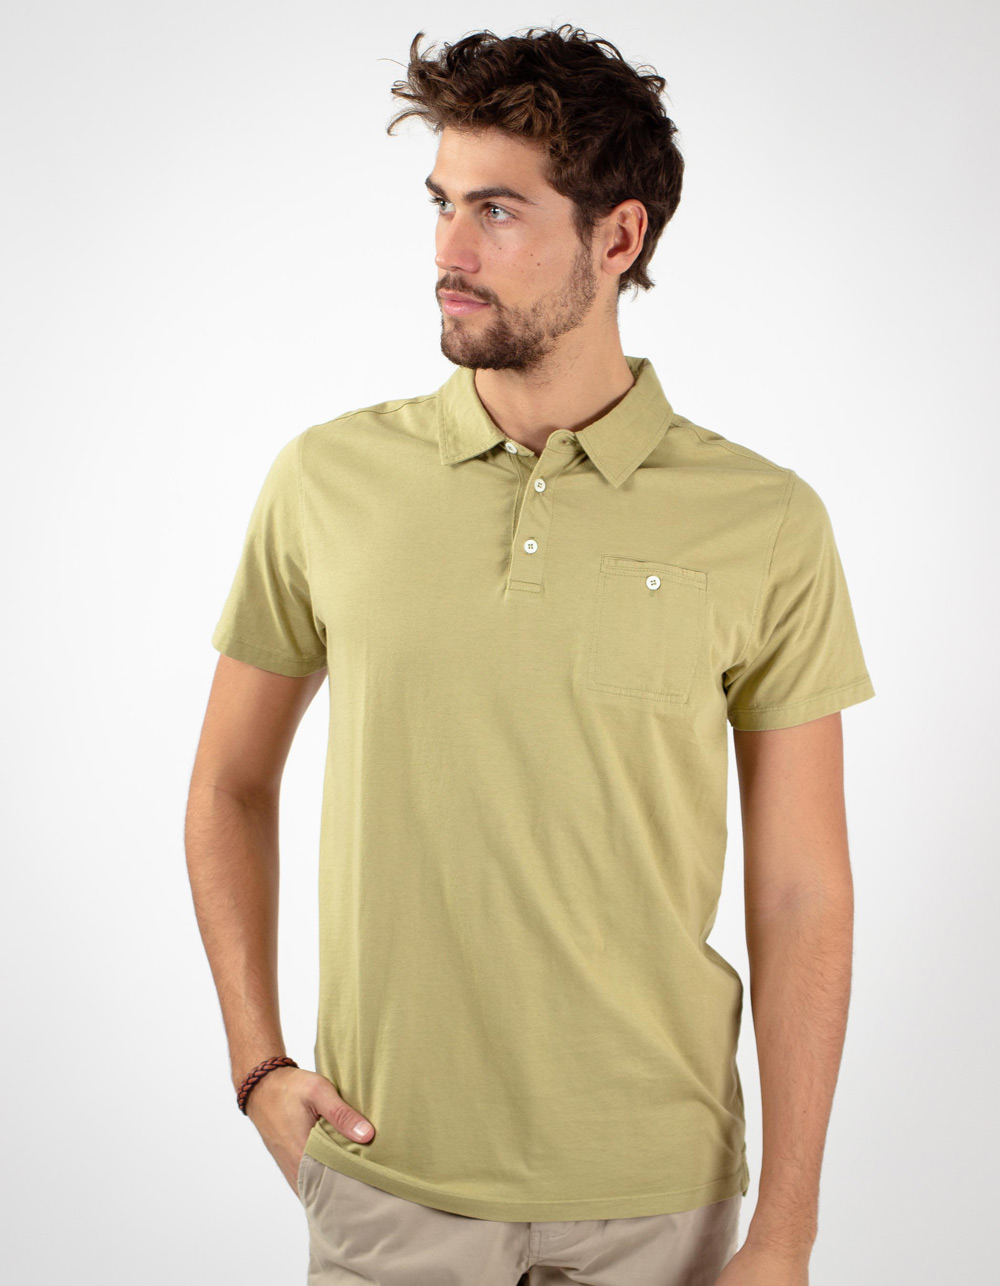 Green pocket polo shirt